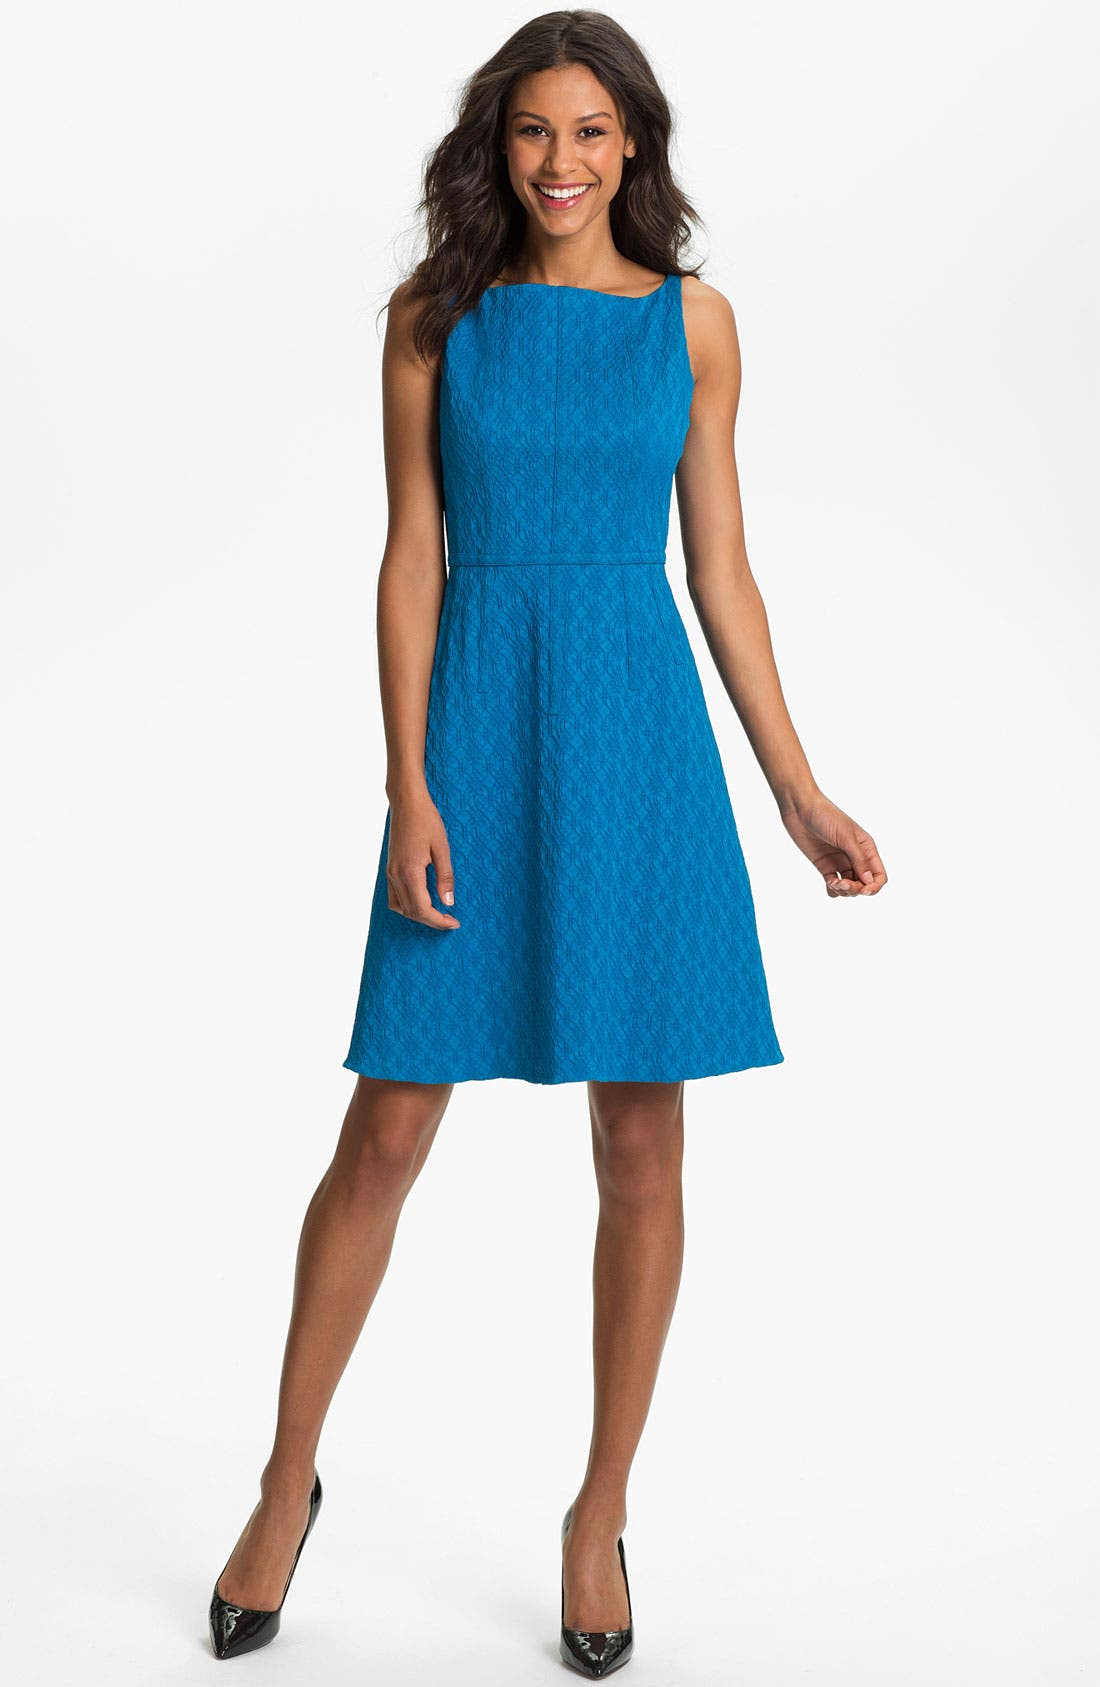 Alternate Image 1 Selected - Adrianna Papell Jacquard Fit & Flare Dress